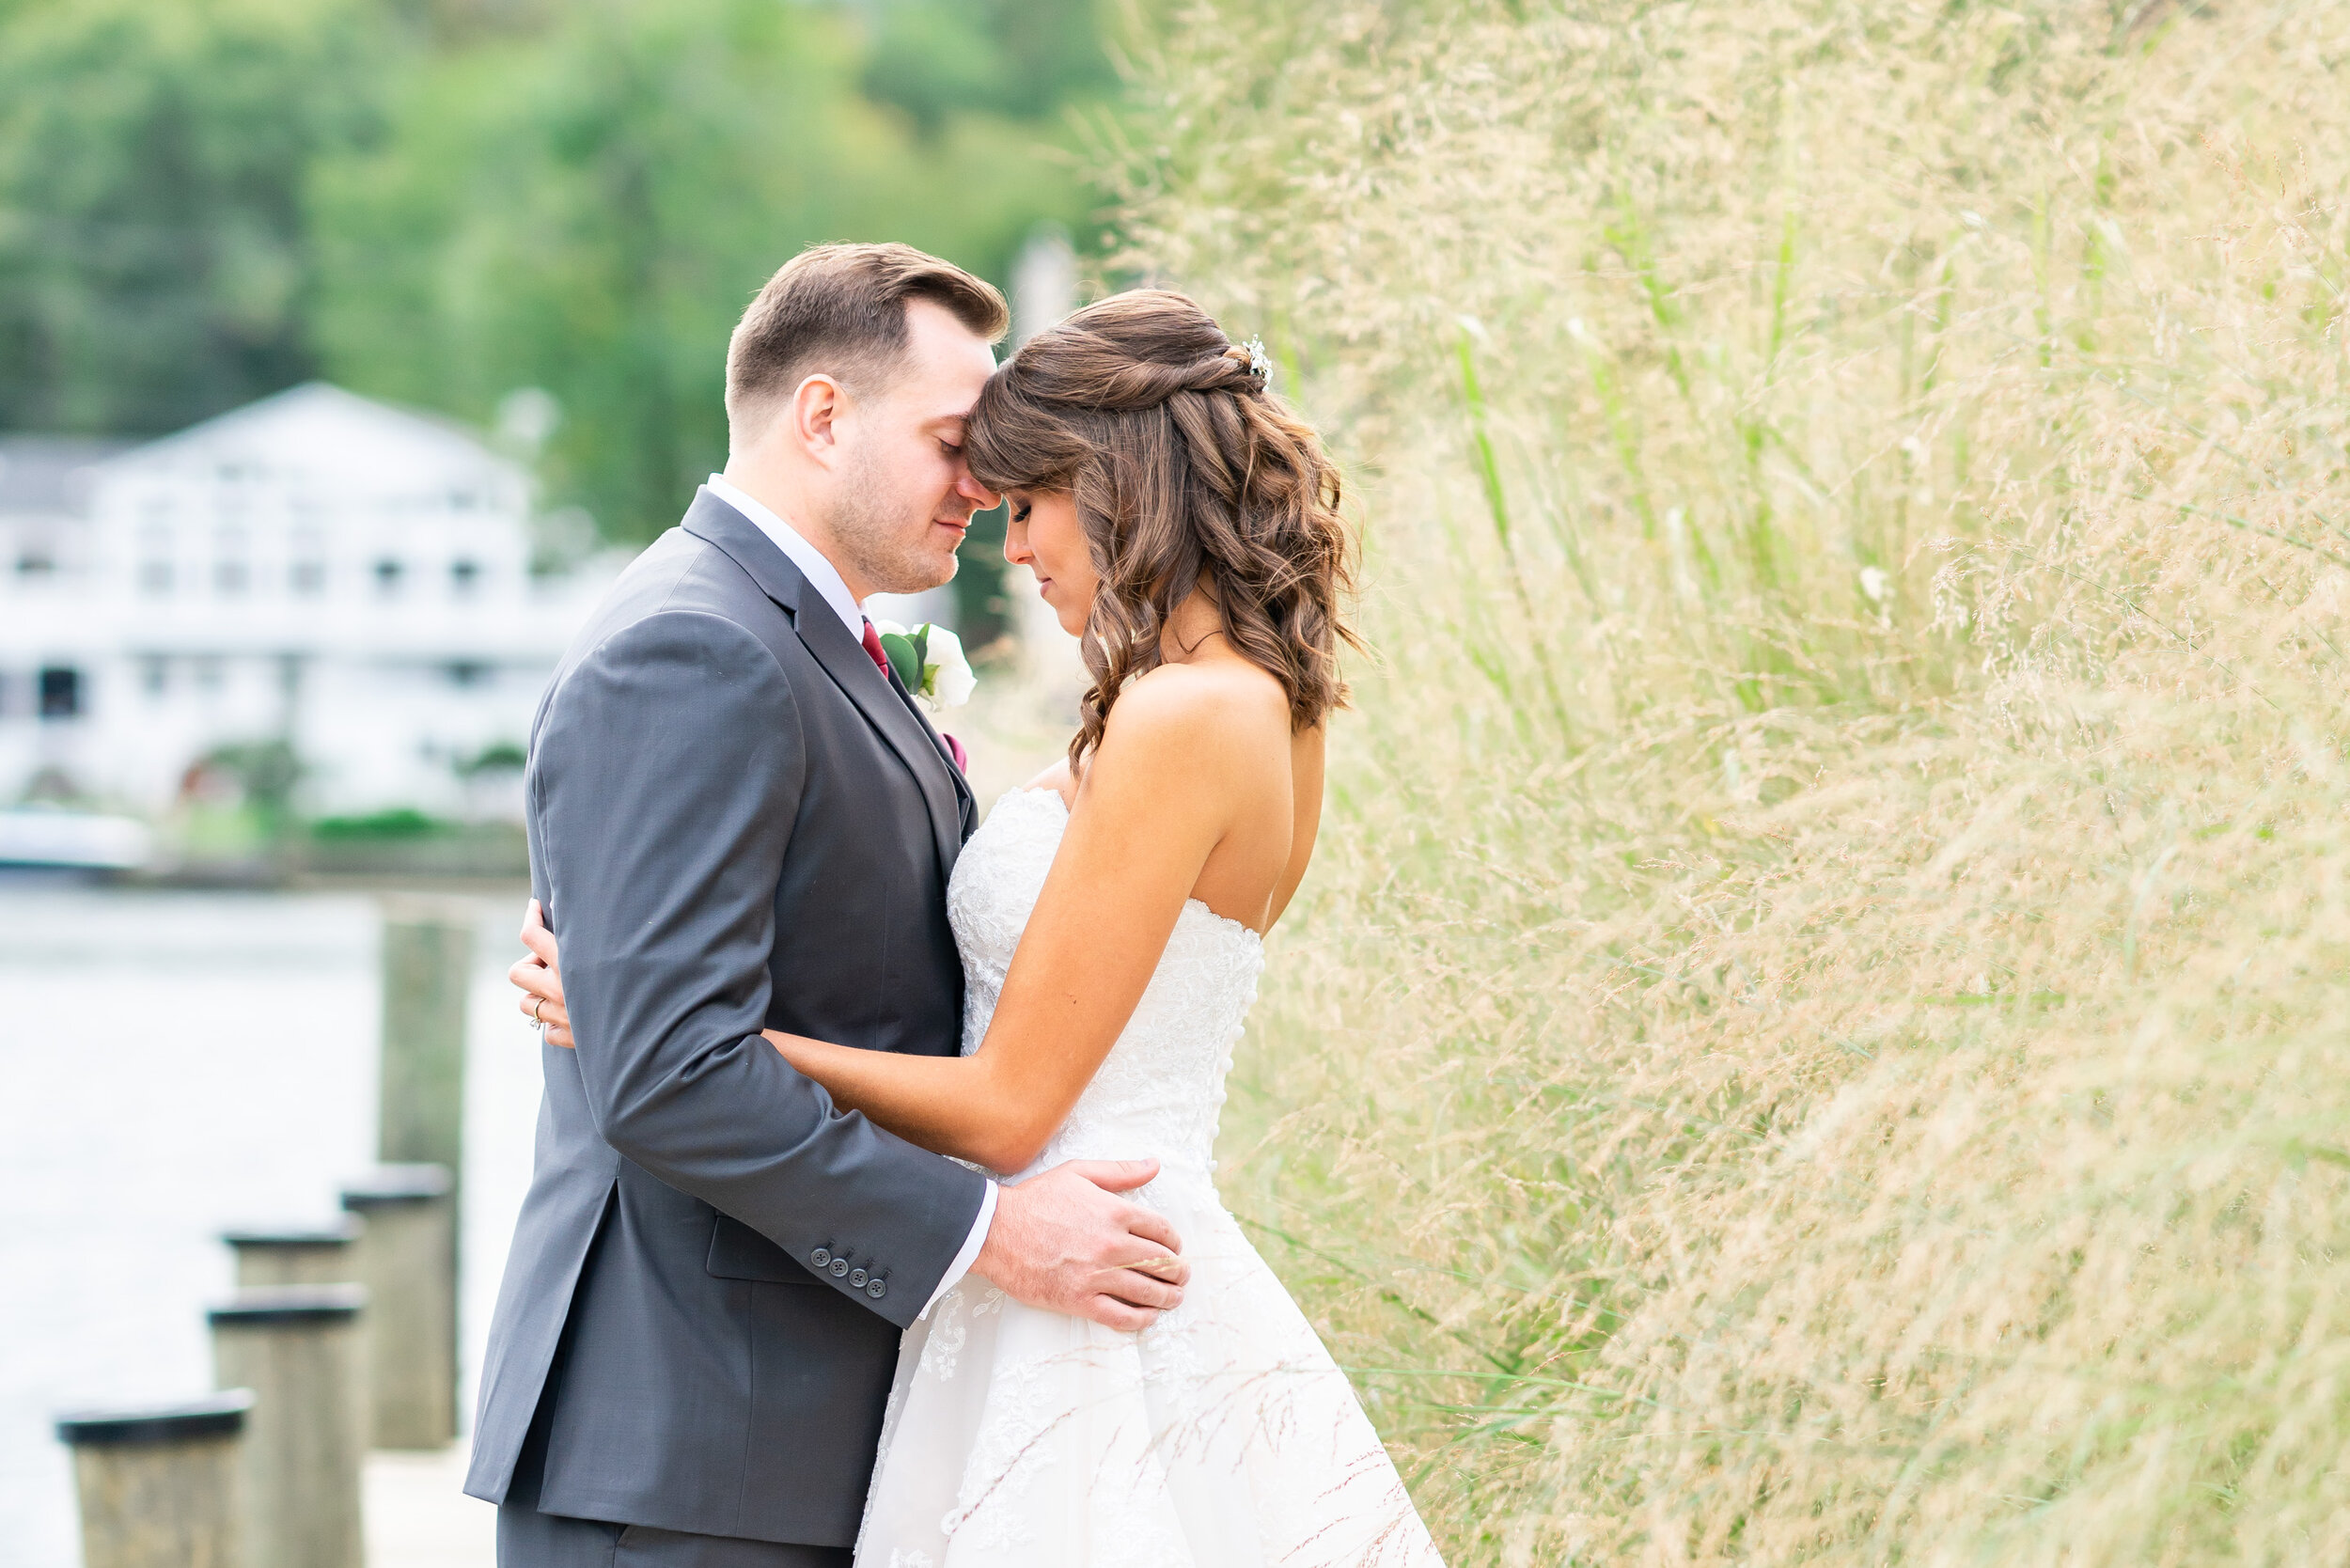 Bride and groom touching foreheads on the dock at Occoquan regional park